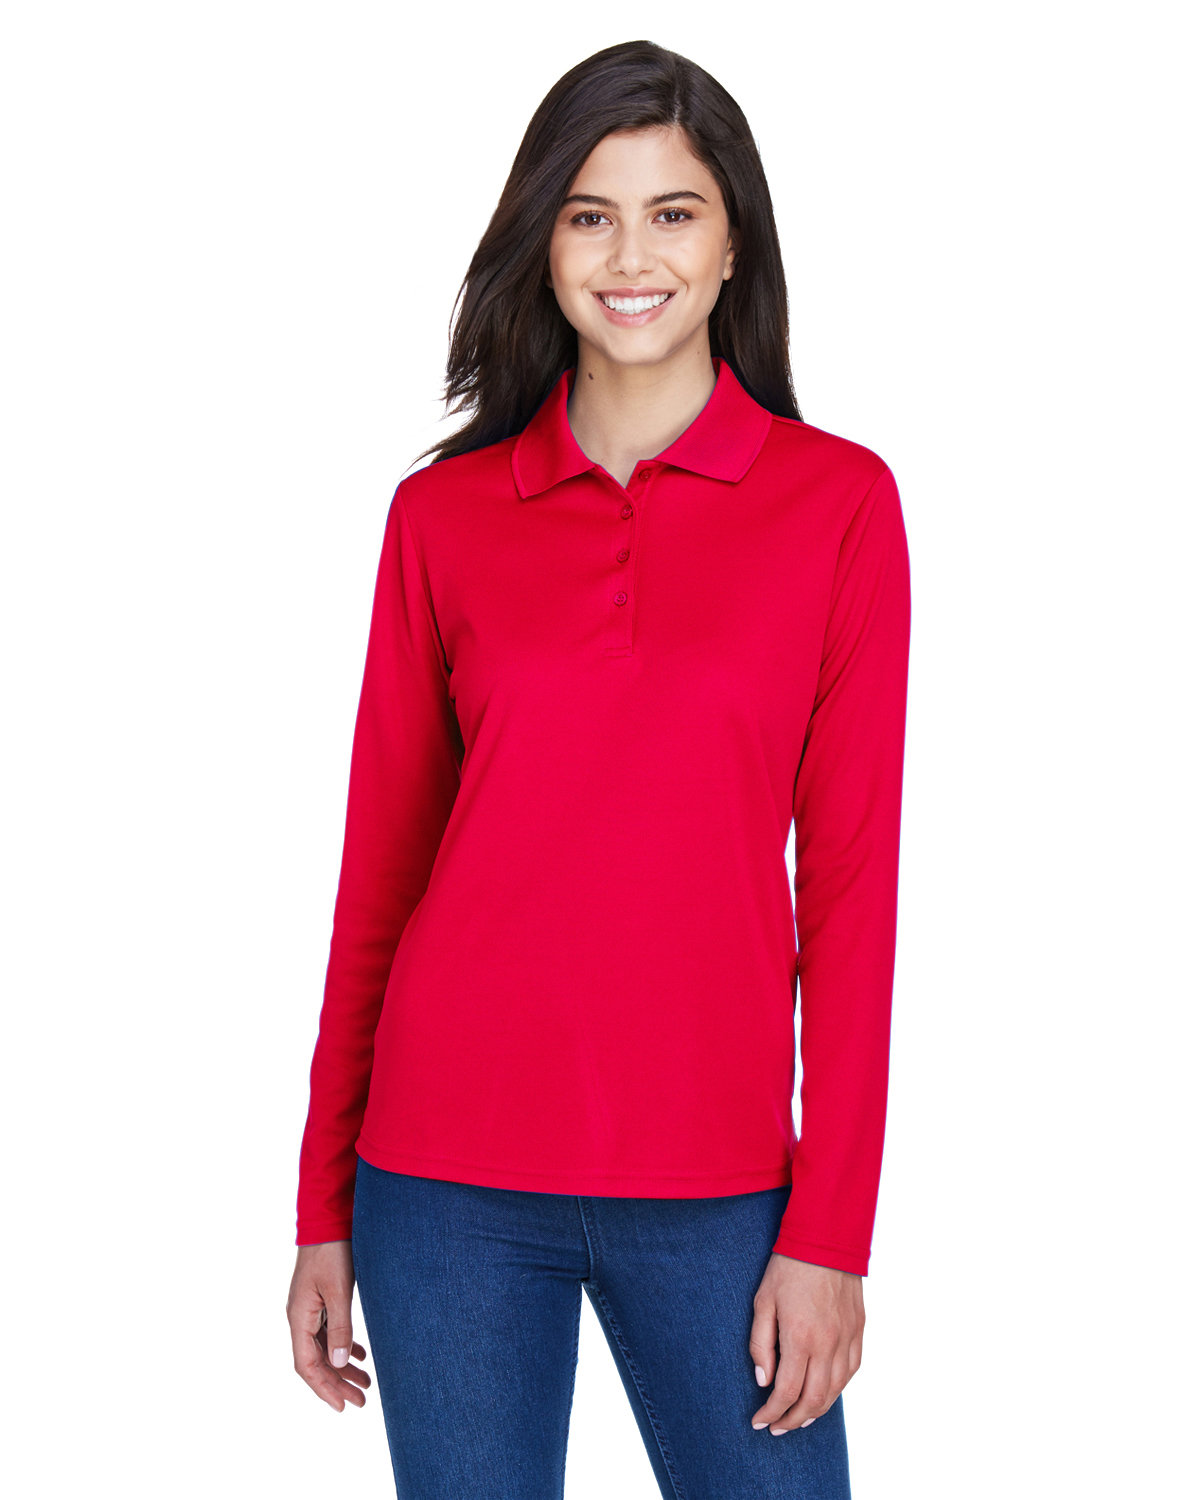 Core 365 Ladies' Pinnacle Performance Long-Sleeve Piqué Polo CLASSIC RED